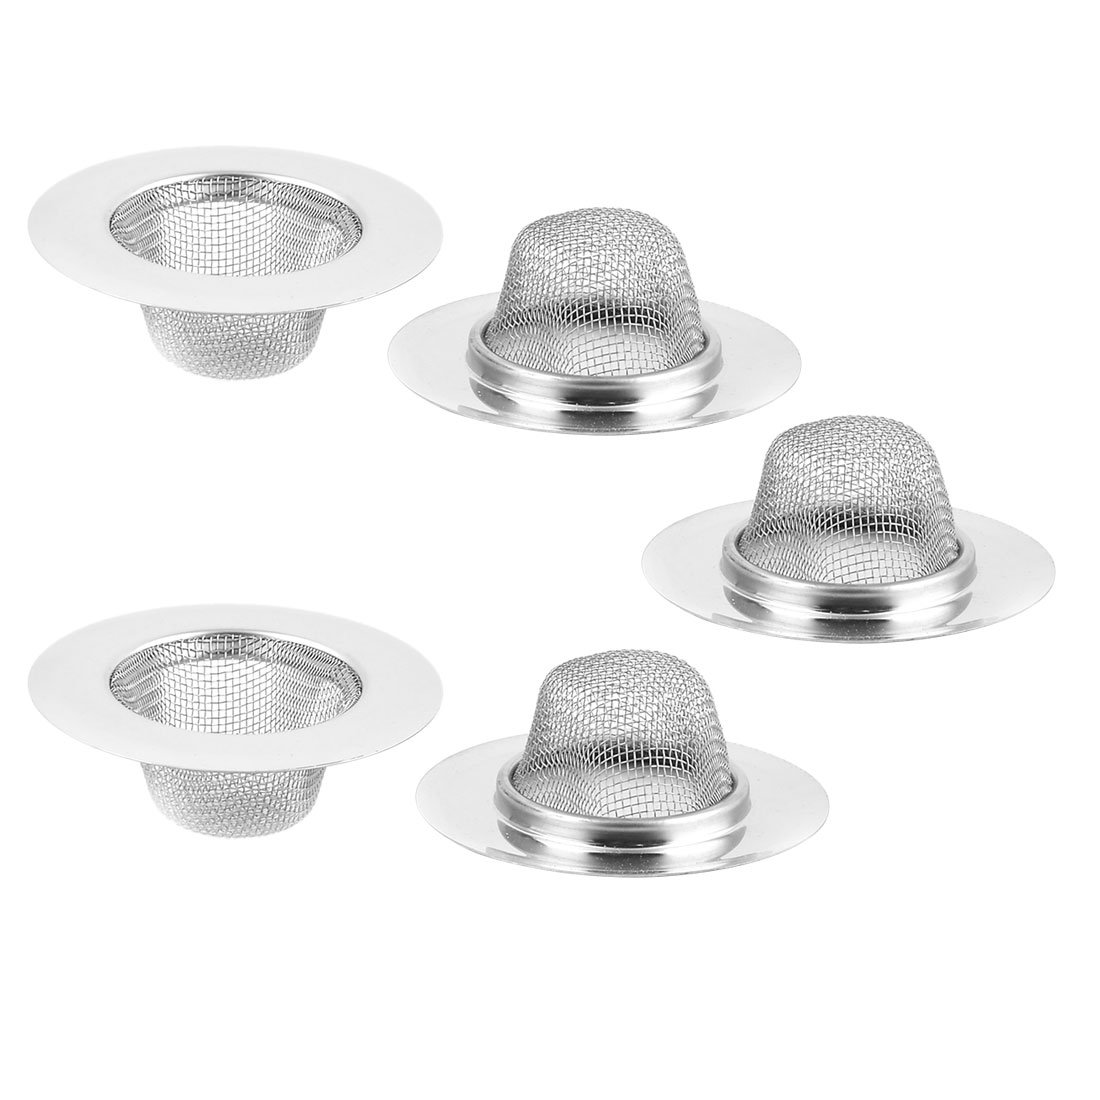 uxcell Stainless Steel Flat Round Shaped Sink Leftover Stopper Strainer Filter 5pcs